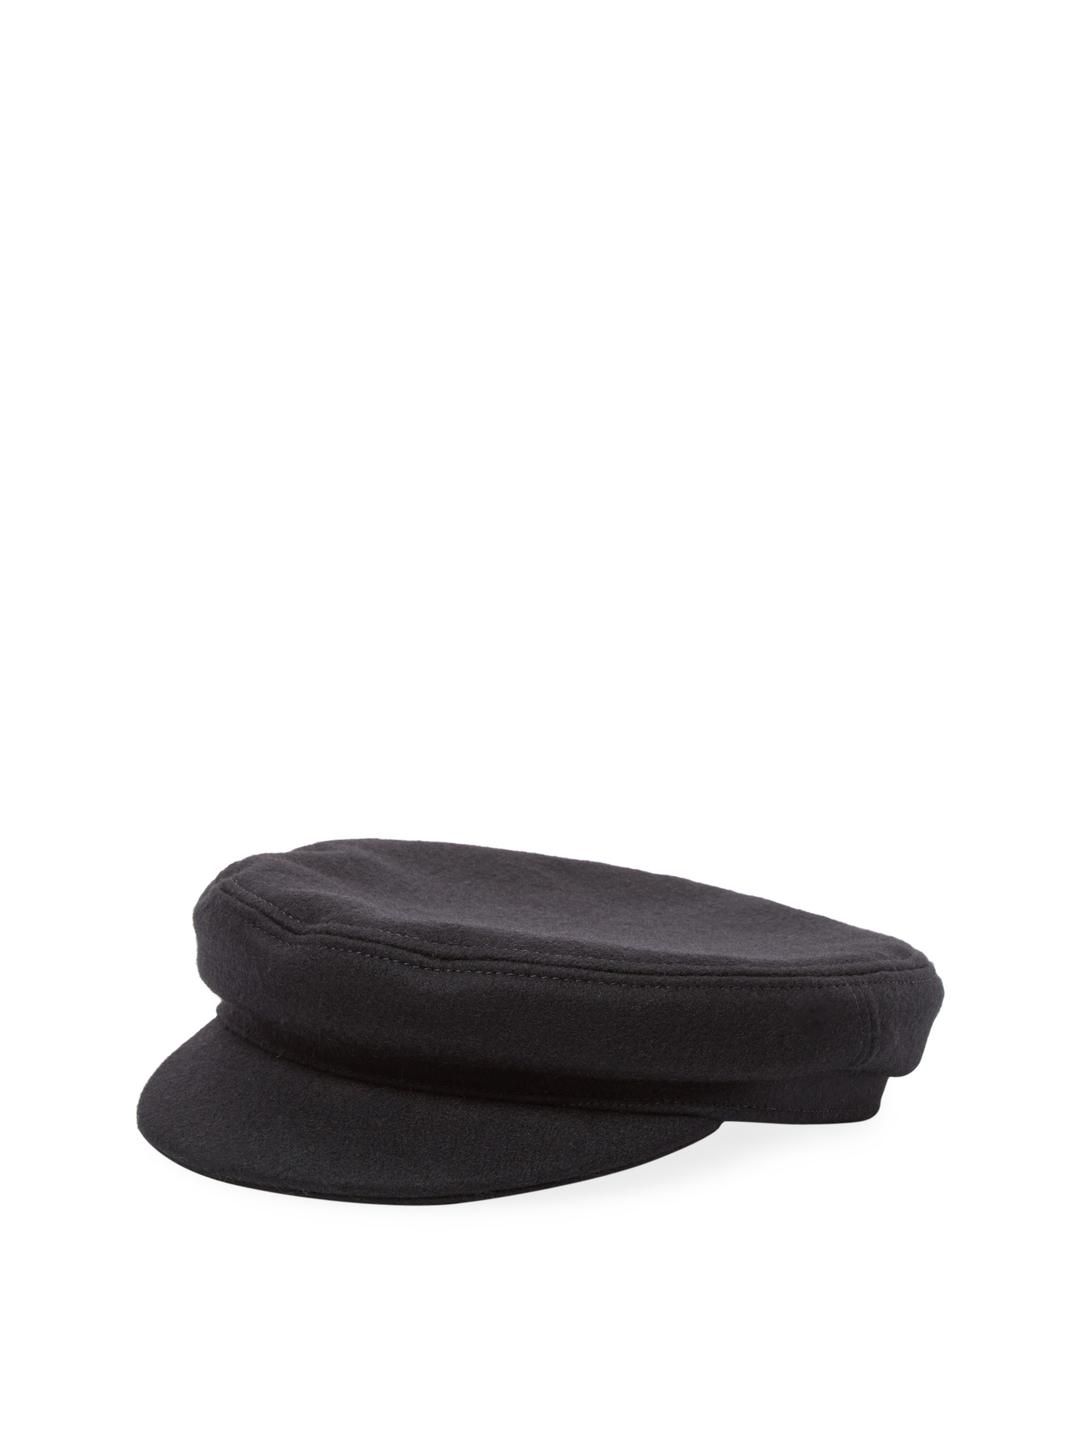 Isabel Marant - Black Casquette Evie Wool Hat - Lyst. View Fullscreen 931df60d7106